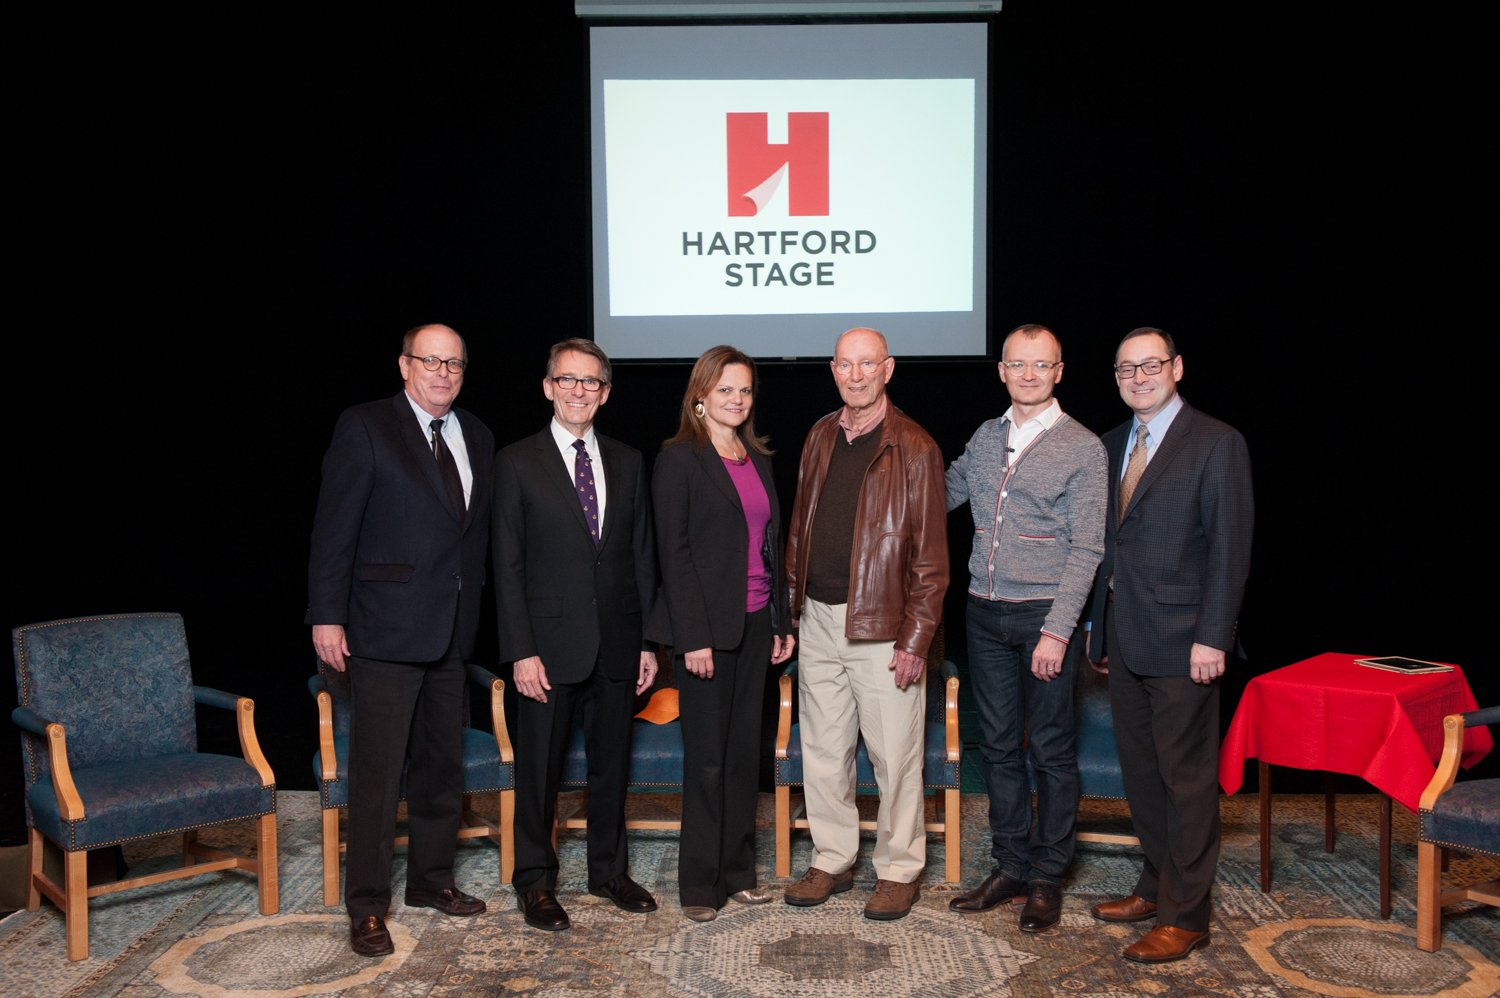 Left to right: David Hawkanson, former managing director; Mark Lamos, former artistic director; Teresa Eyring, executive director of Theatre Communications Group; Jacques Cartier, founding artistic director; Darko Tresnjak and Michael Stotts, current managing director of Hartford Stage.